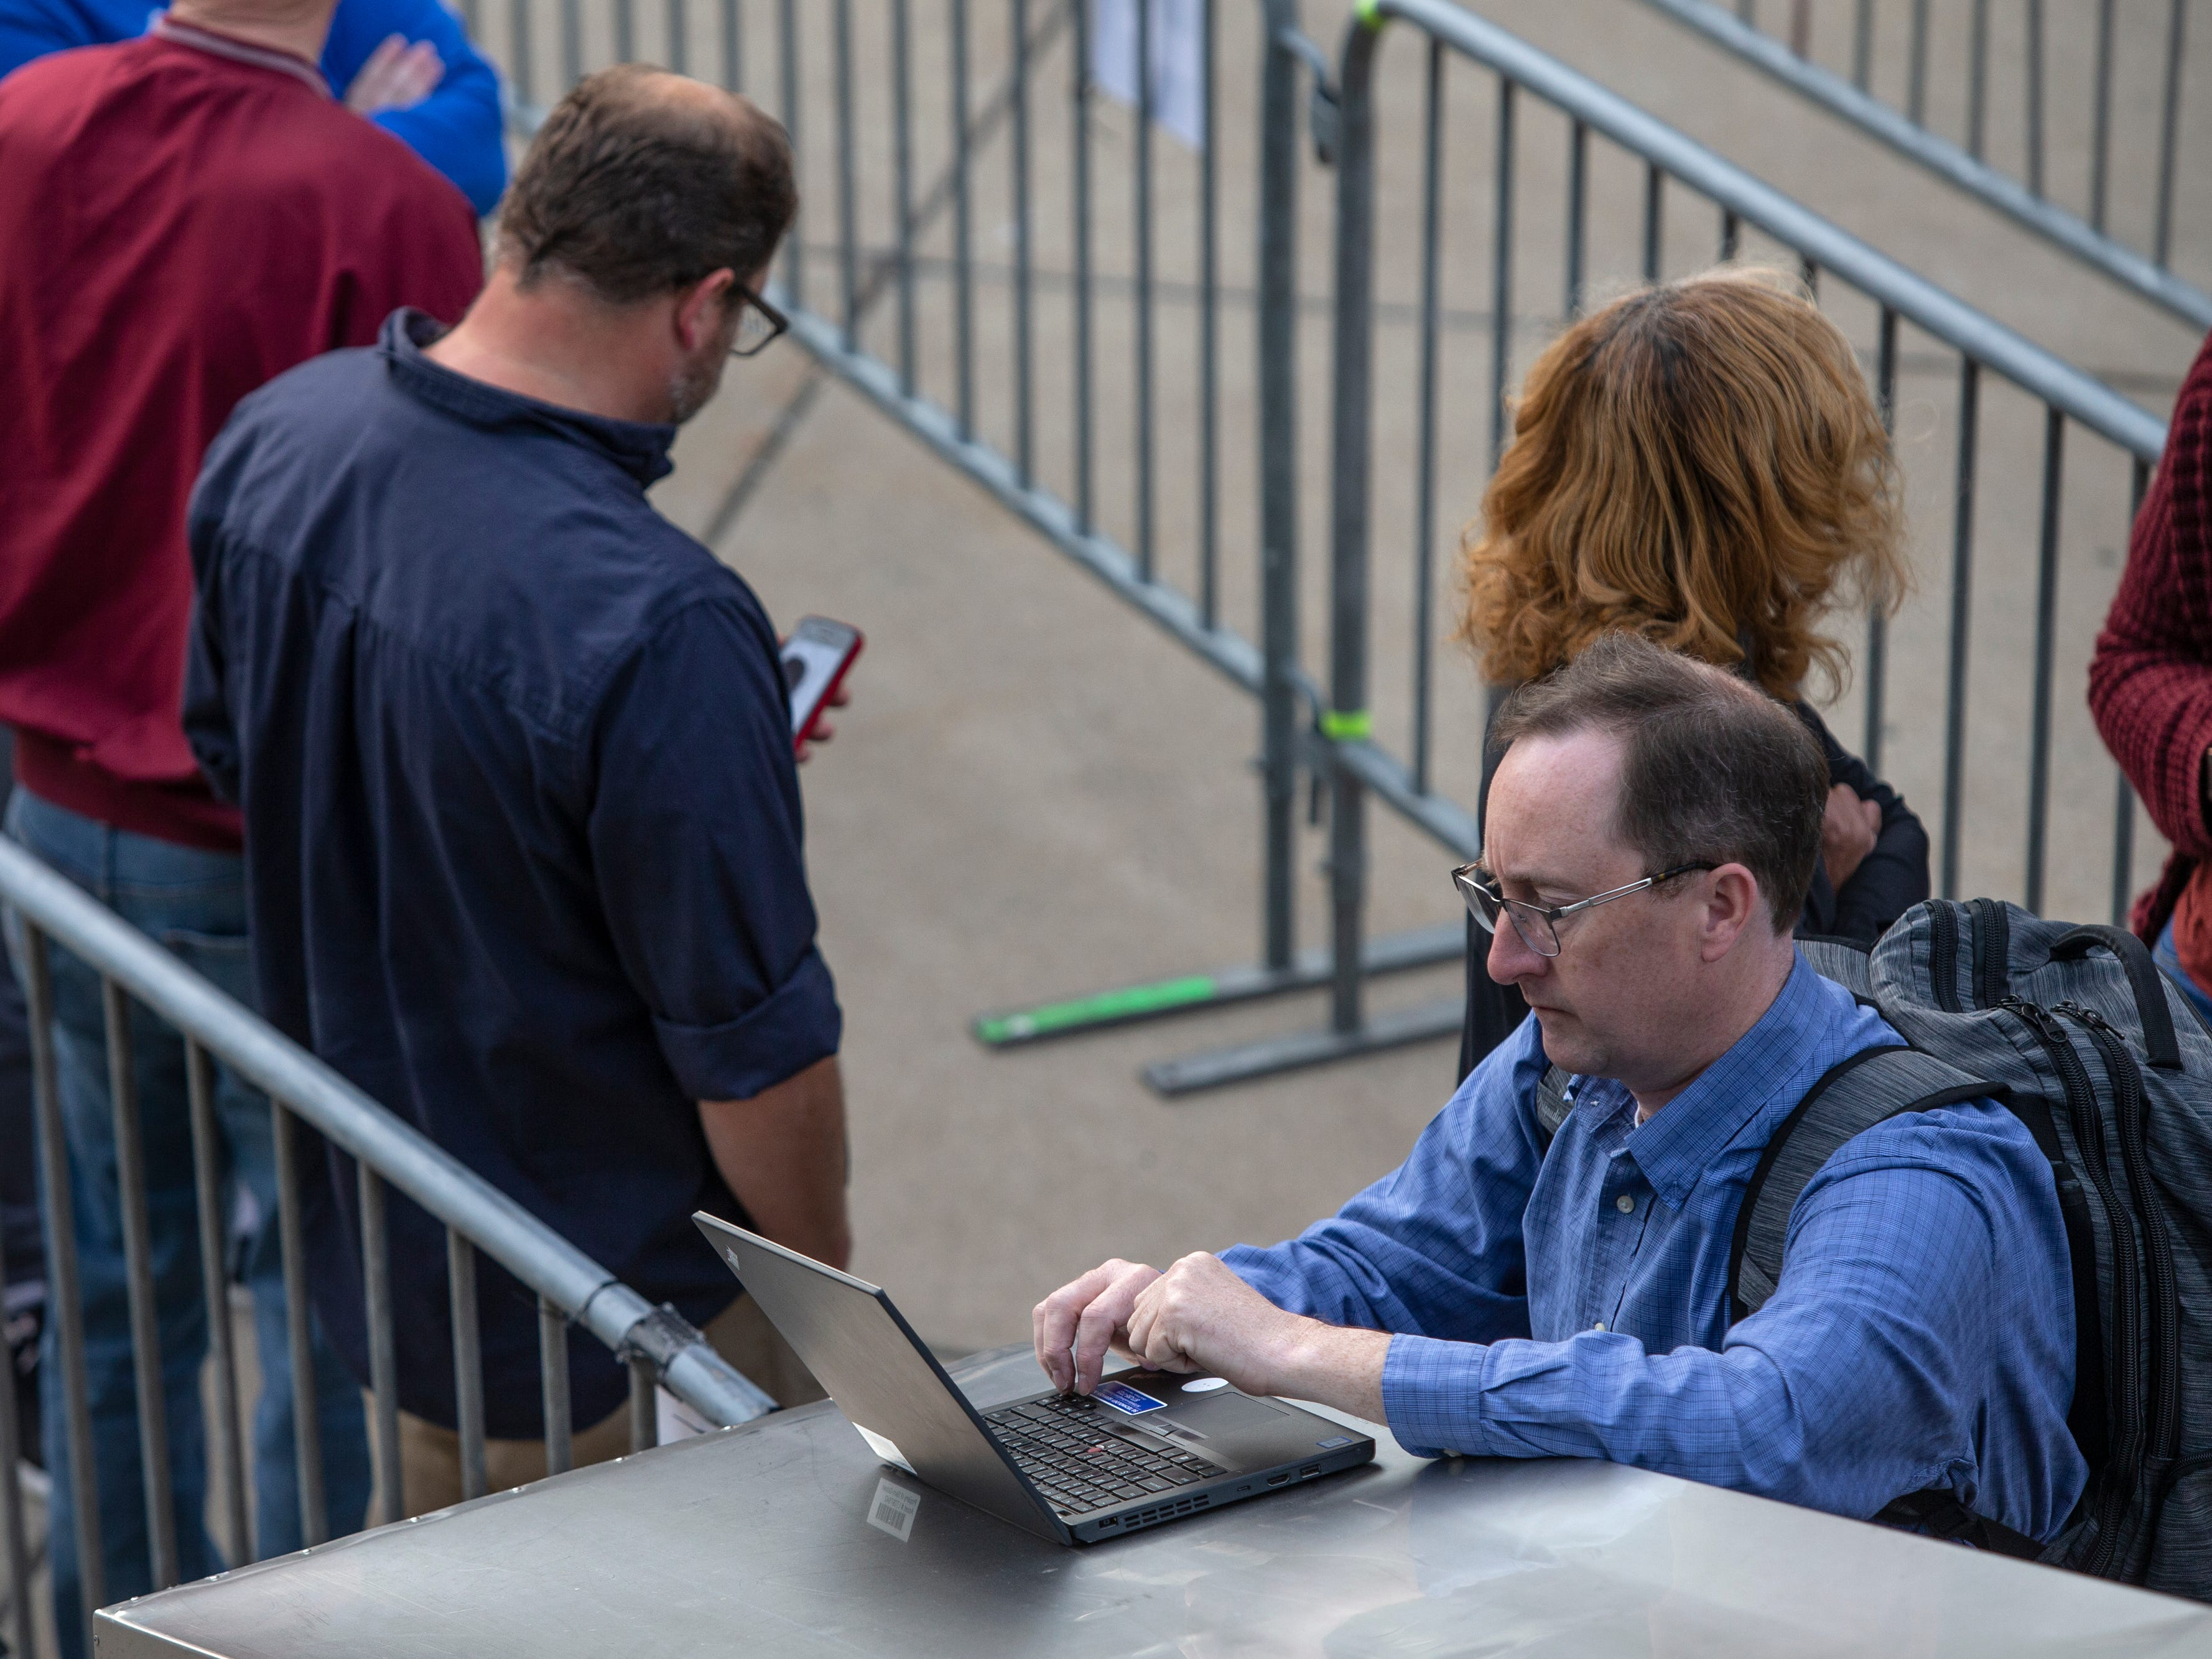 """Jim Williams works on employee performance appraisals while waiting in line for tickets to the play, """"Hamilton."""" April 11, 2019."""